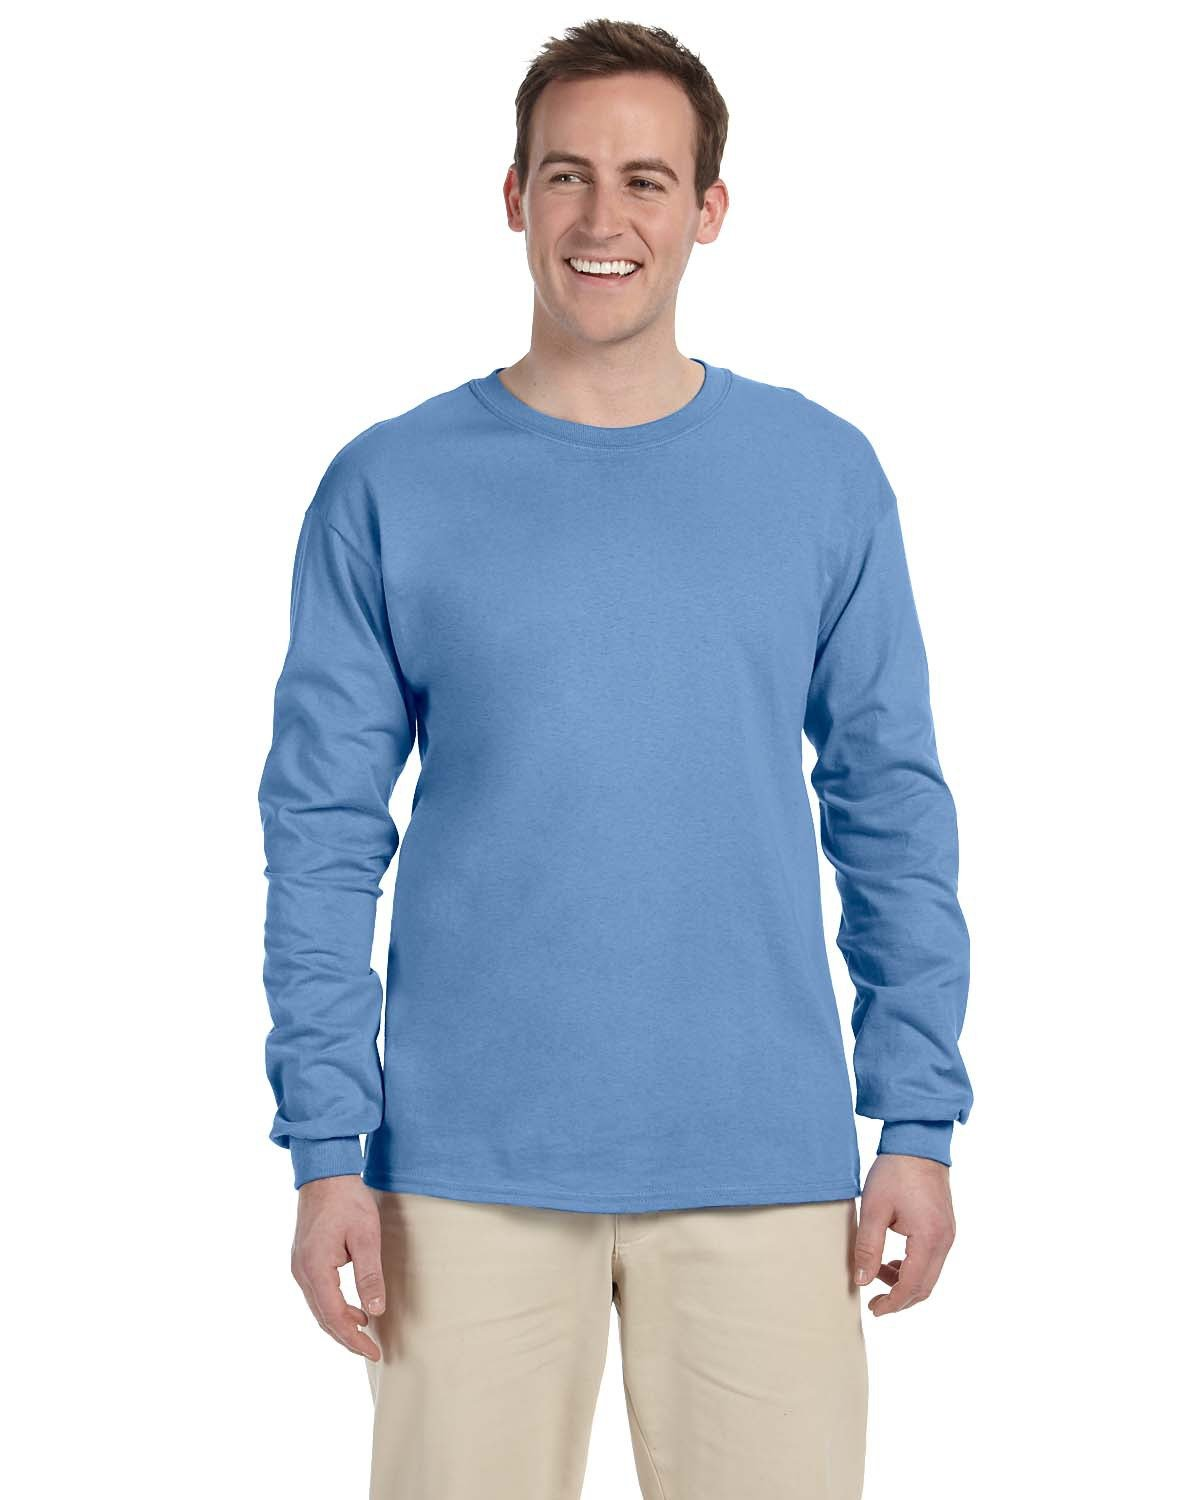 Fruit of the Loom Adult HD Cotton™ Long-Sleeve T-Shirt COLUMBIA BLUE